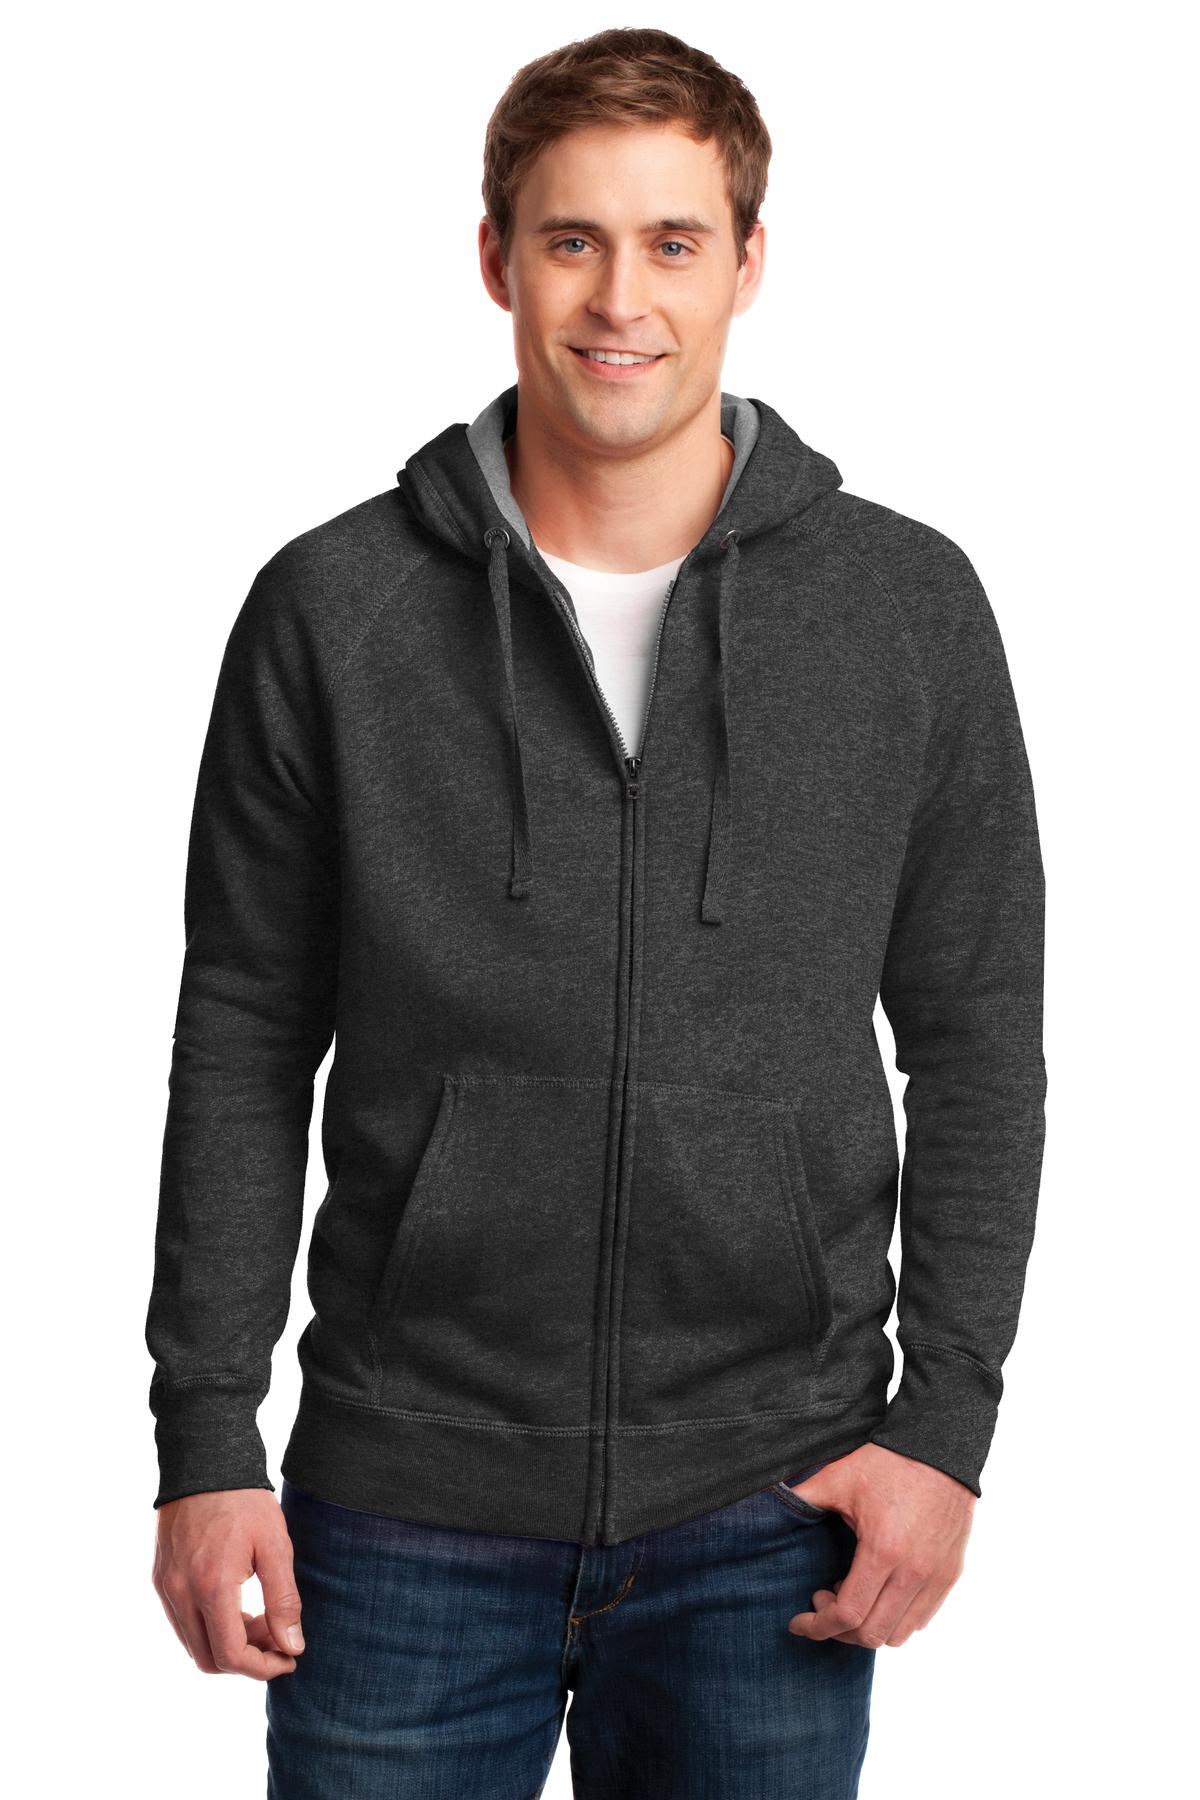 Hanes ®  Nano Full-Zip Hooded Sweatshirt. HN280 - Charcoal Heather*